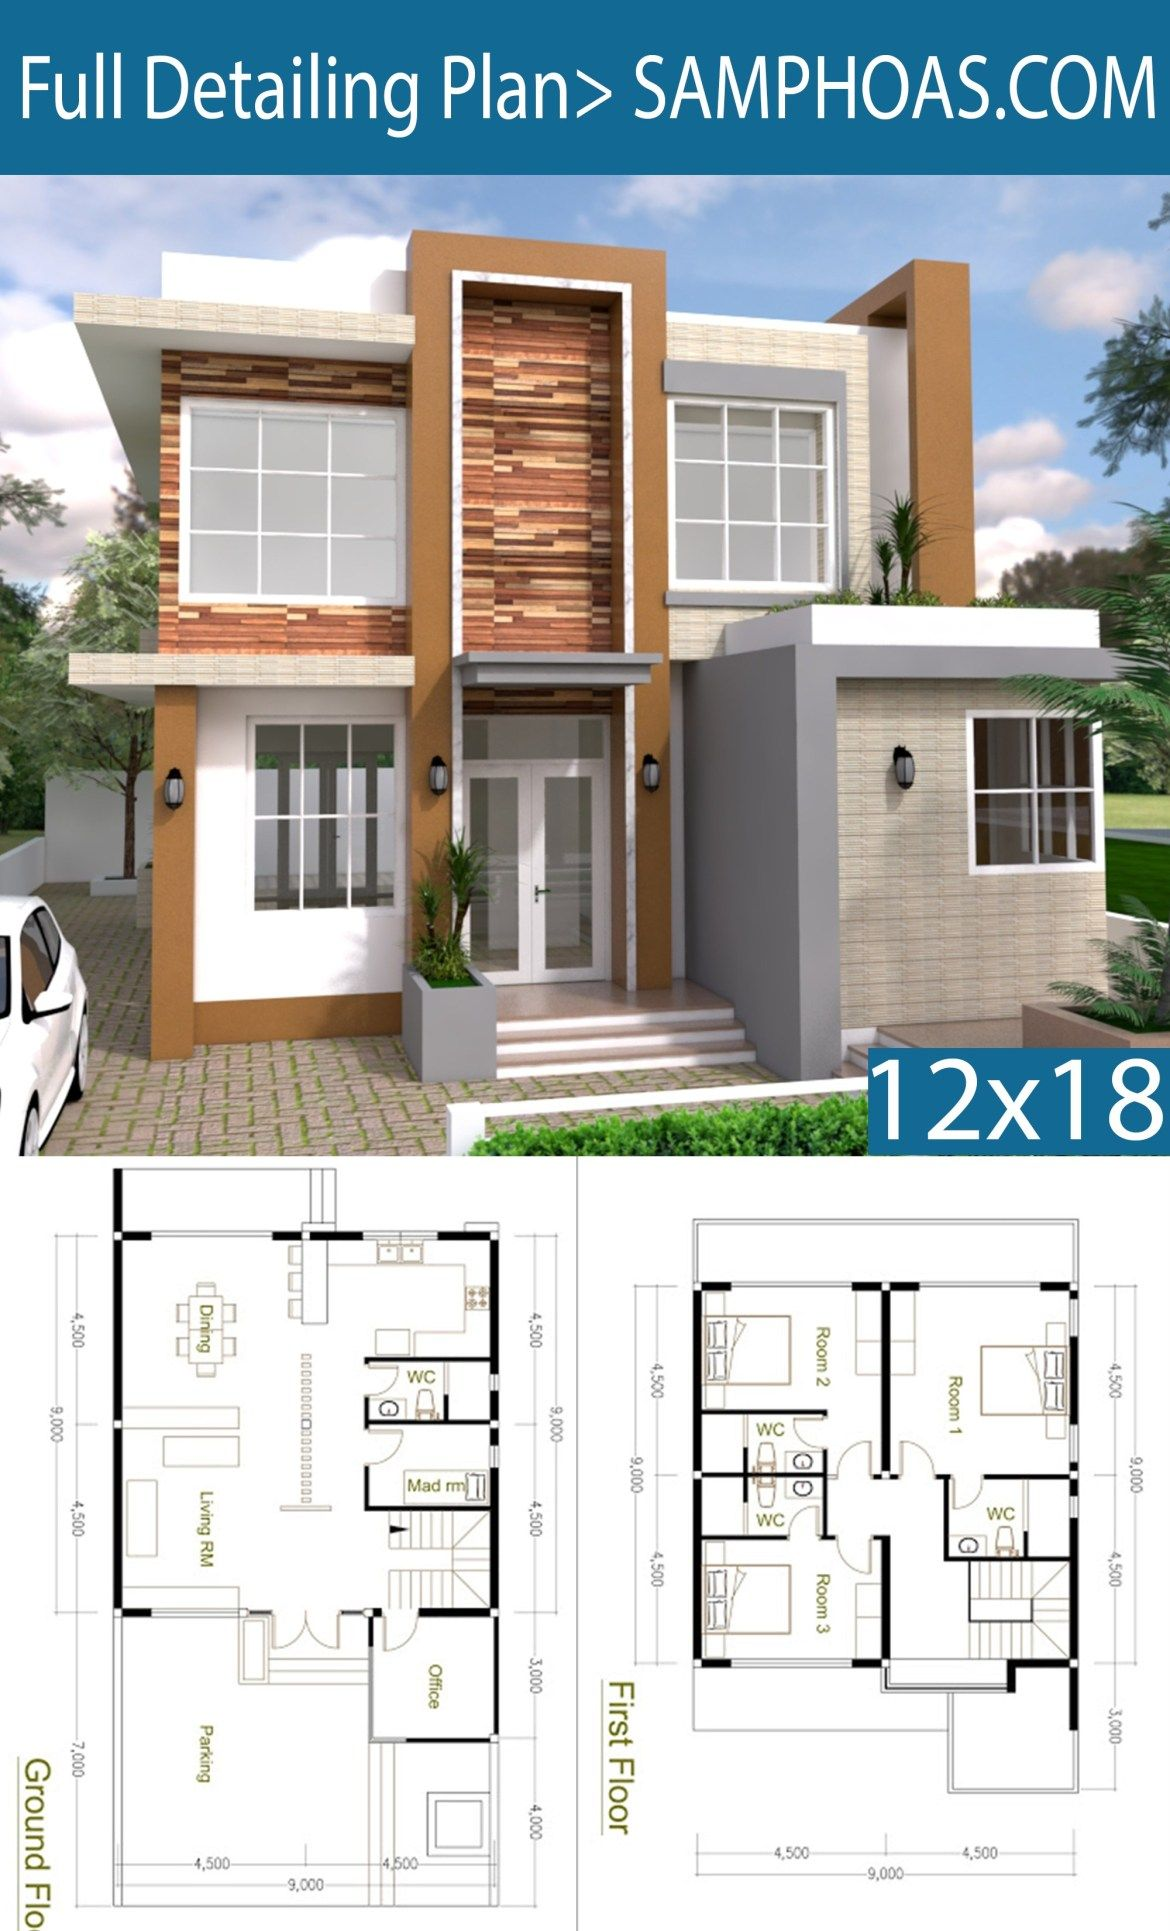 4 Bedrooms Home Design Plan 9x9m Samphoas Plansearch Model House Plan Home Building Design Two Story House Design